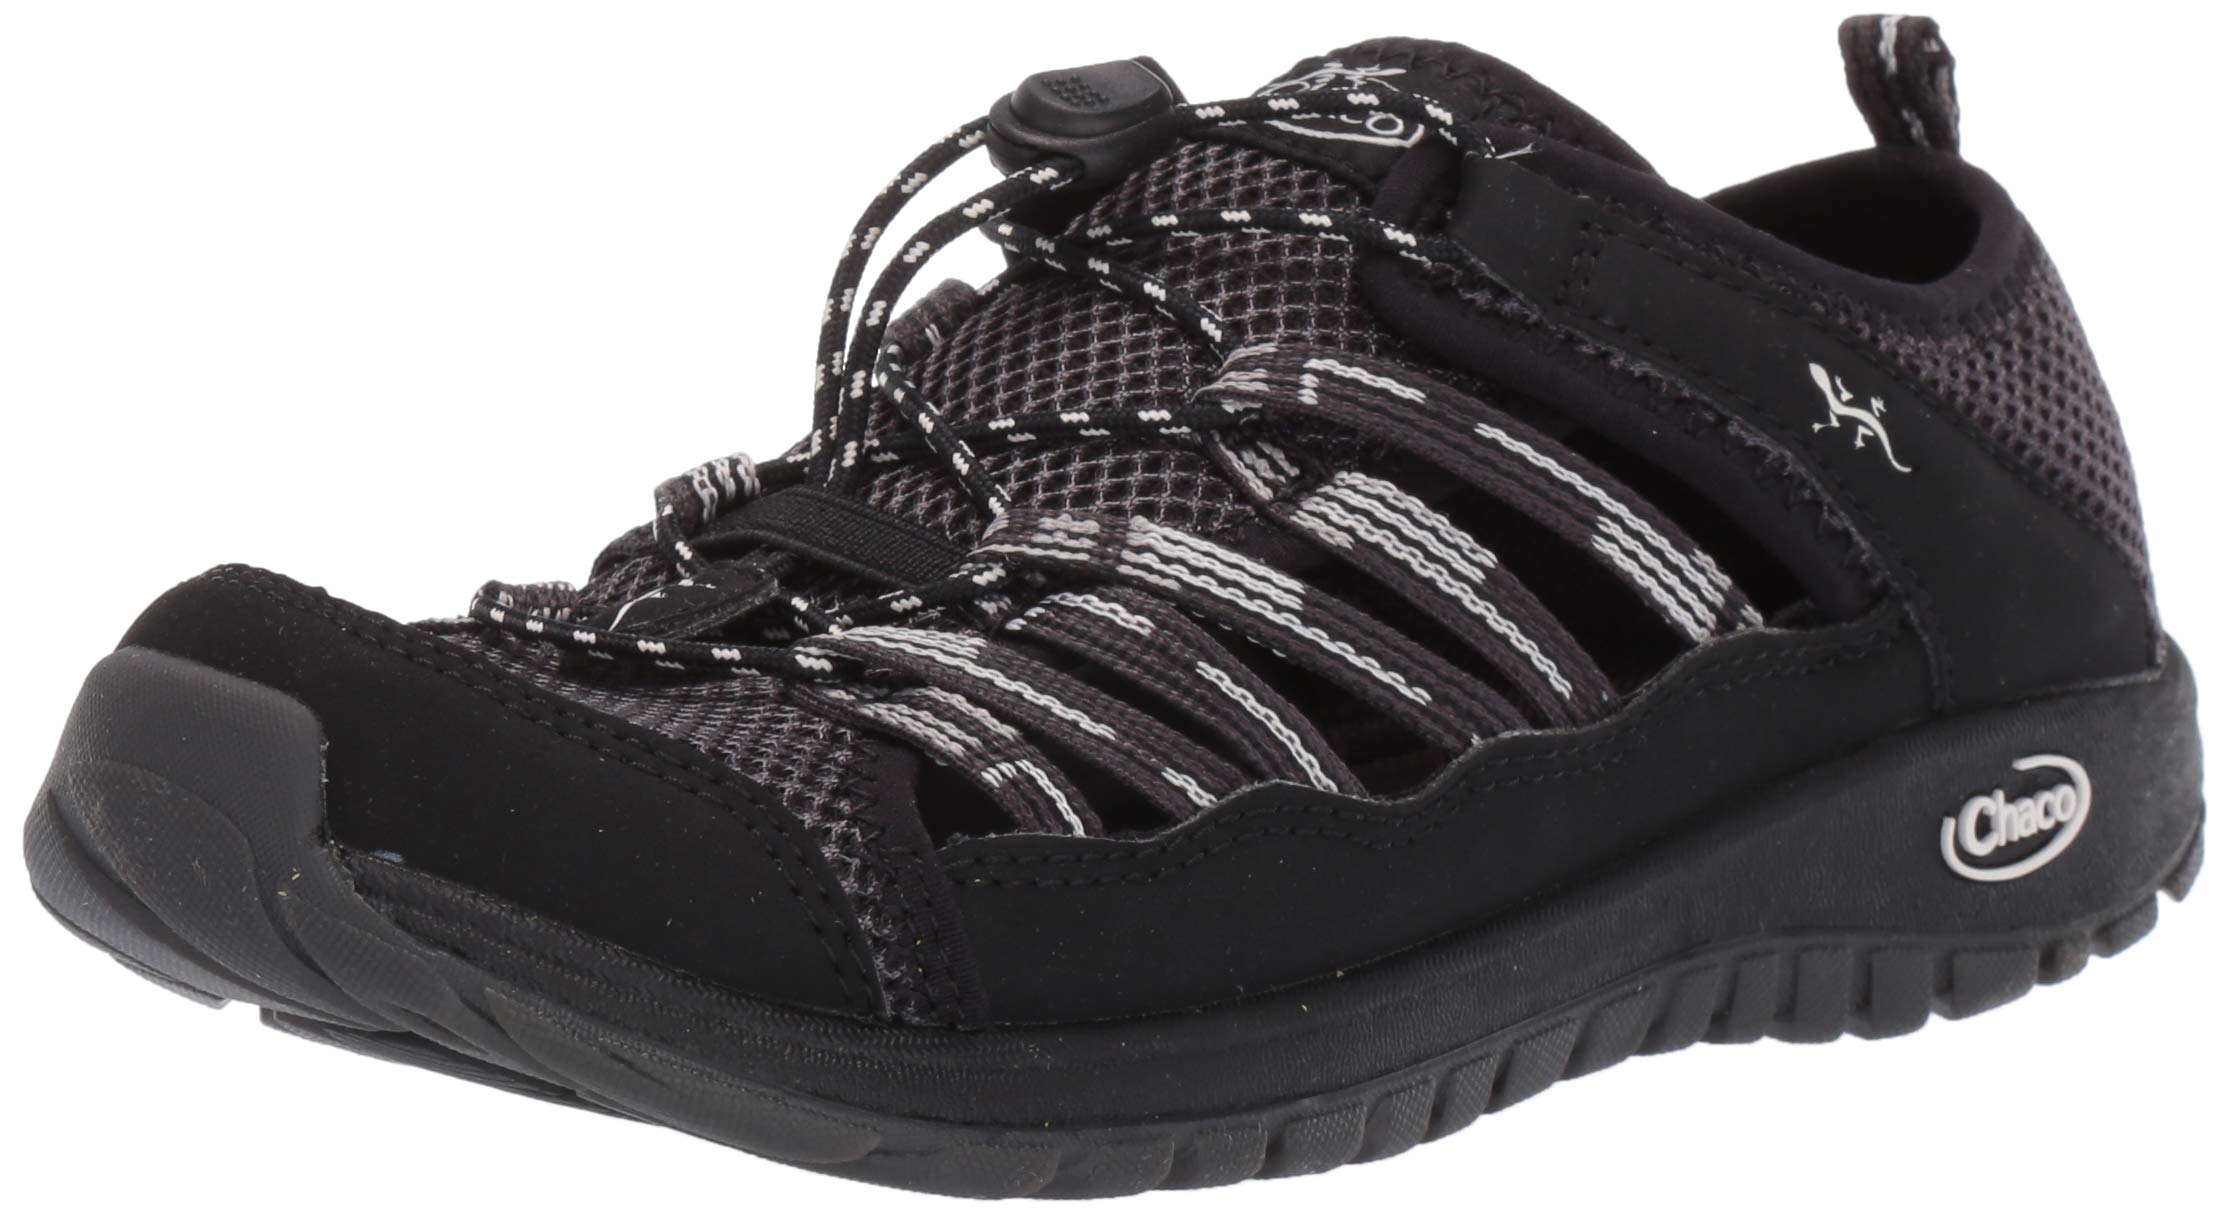 Chaco Outcross 2 Kids Hiking Shoe, Black, 10.0 M US Toddler by Chaco